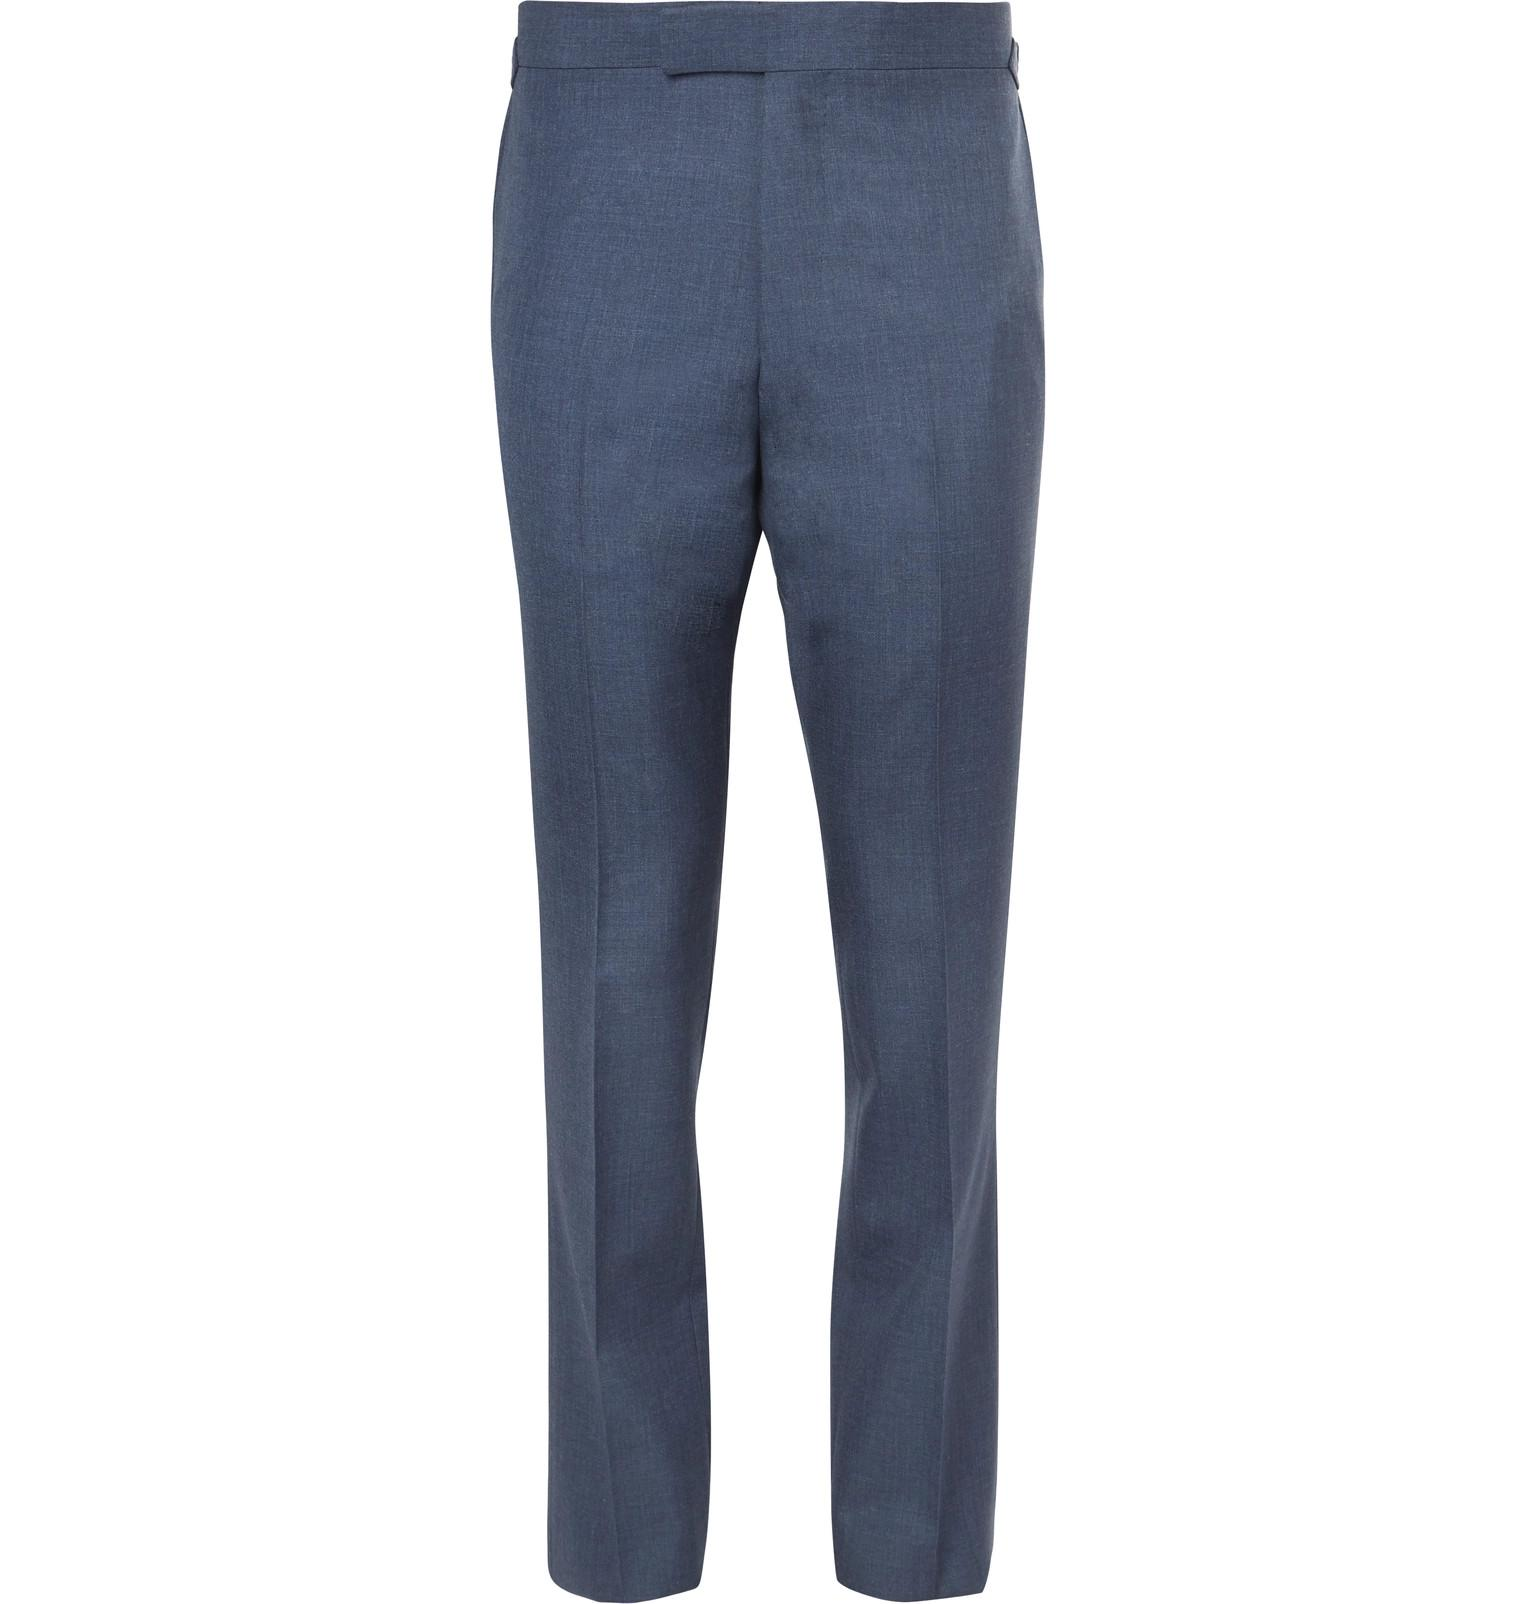 Navy Slim-fit Grosgrain-trimmed Puppytooth Wool Suit Trousers CALVIN KLEIN 205W39NYC 9513tWh4